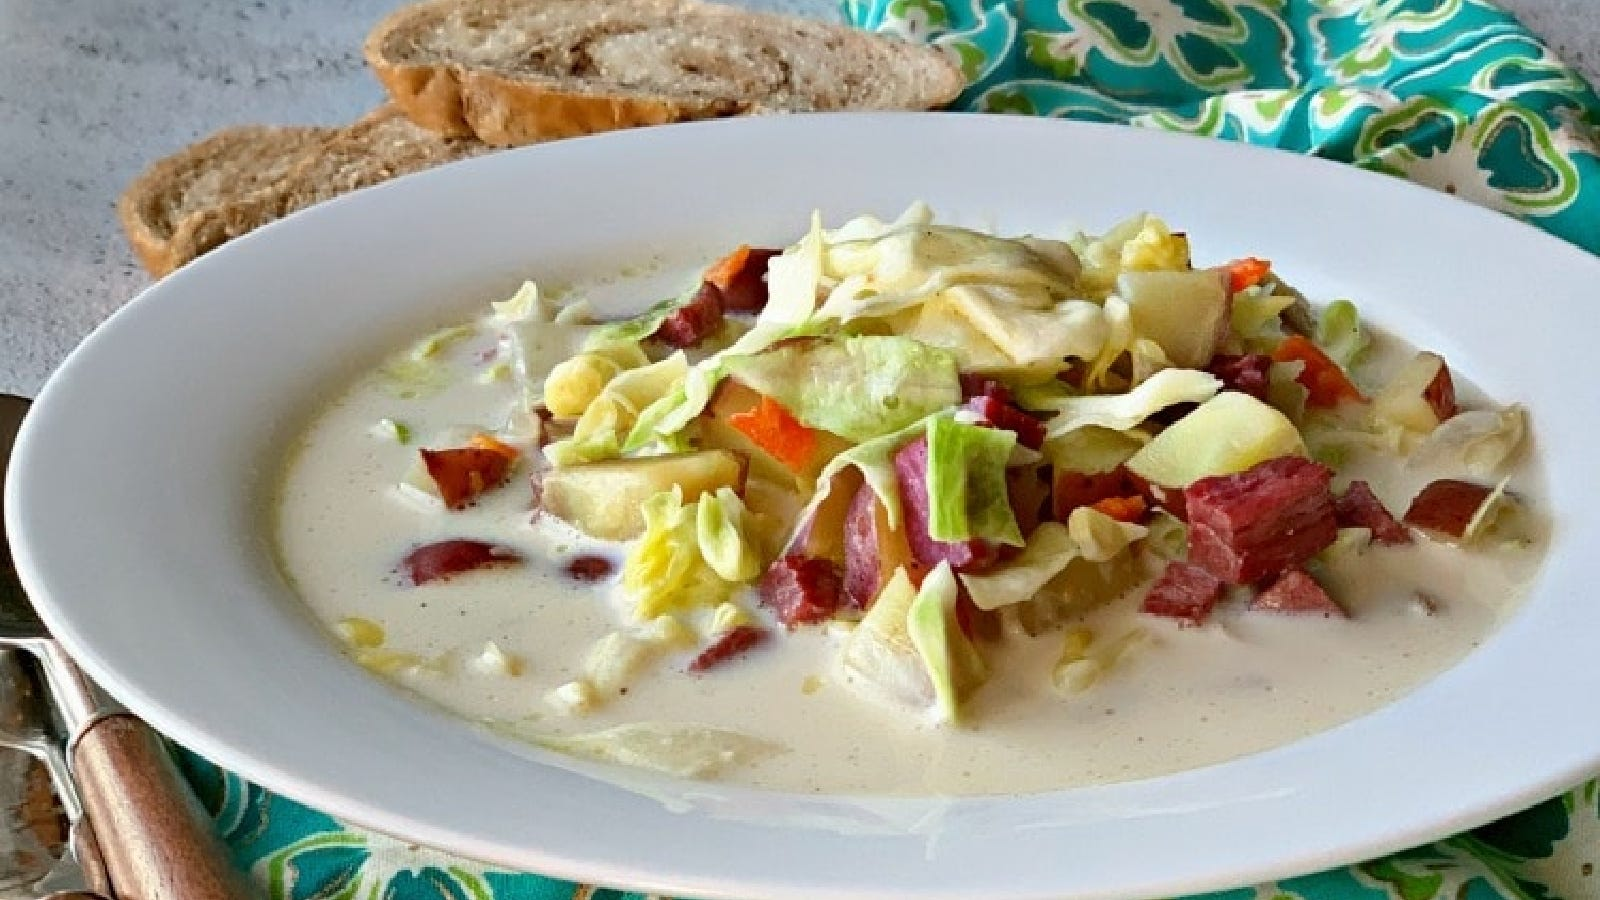 Creamy corned beef and cabbage soup filled in a shallow bowl with bread and a spoon along side of the bowl.